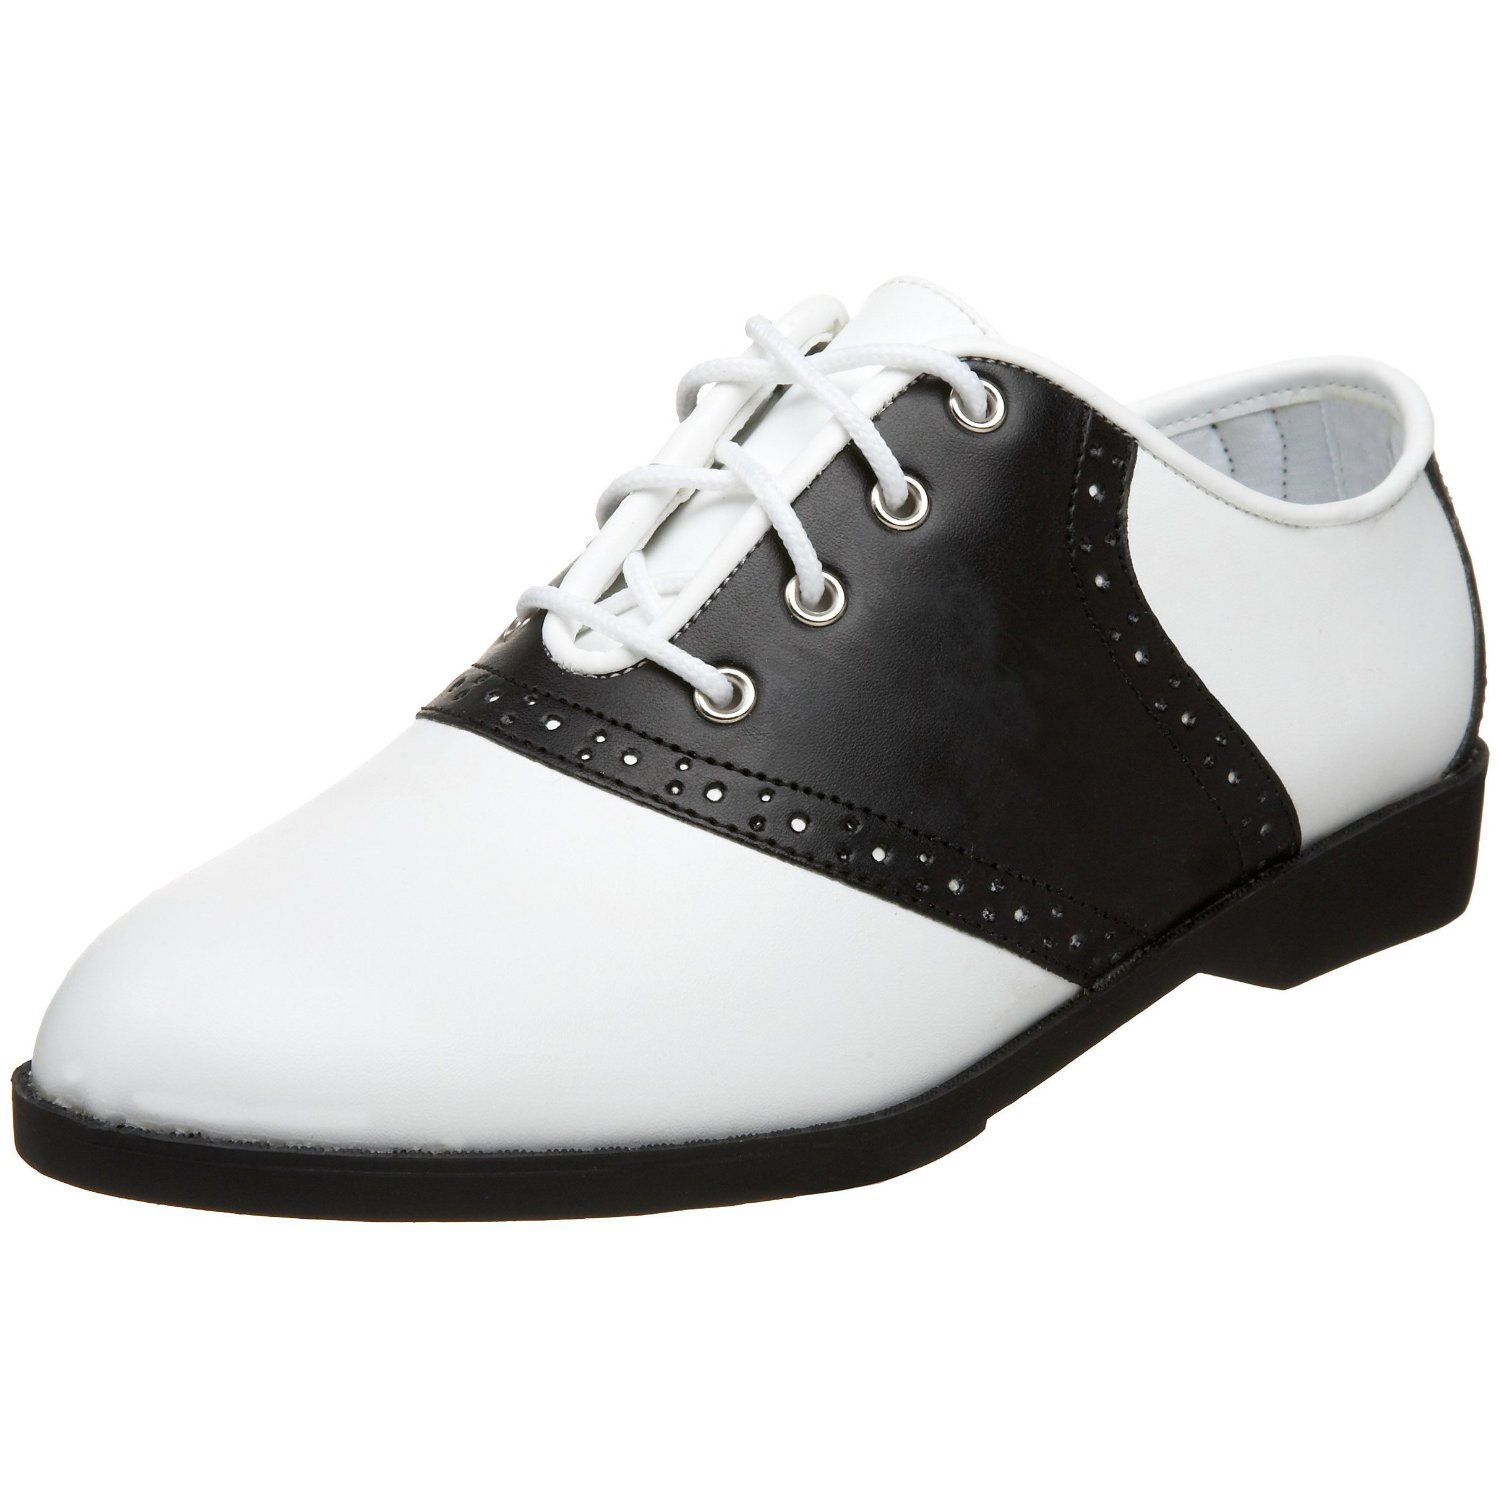 1940s Style Shoes Ladies Saddle Shoes 1950s Costume Shoes 1950s Saddle Shoes White/Black $29.88 AT vintagedancer.com